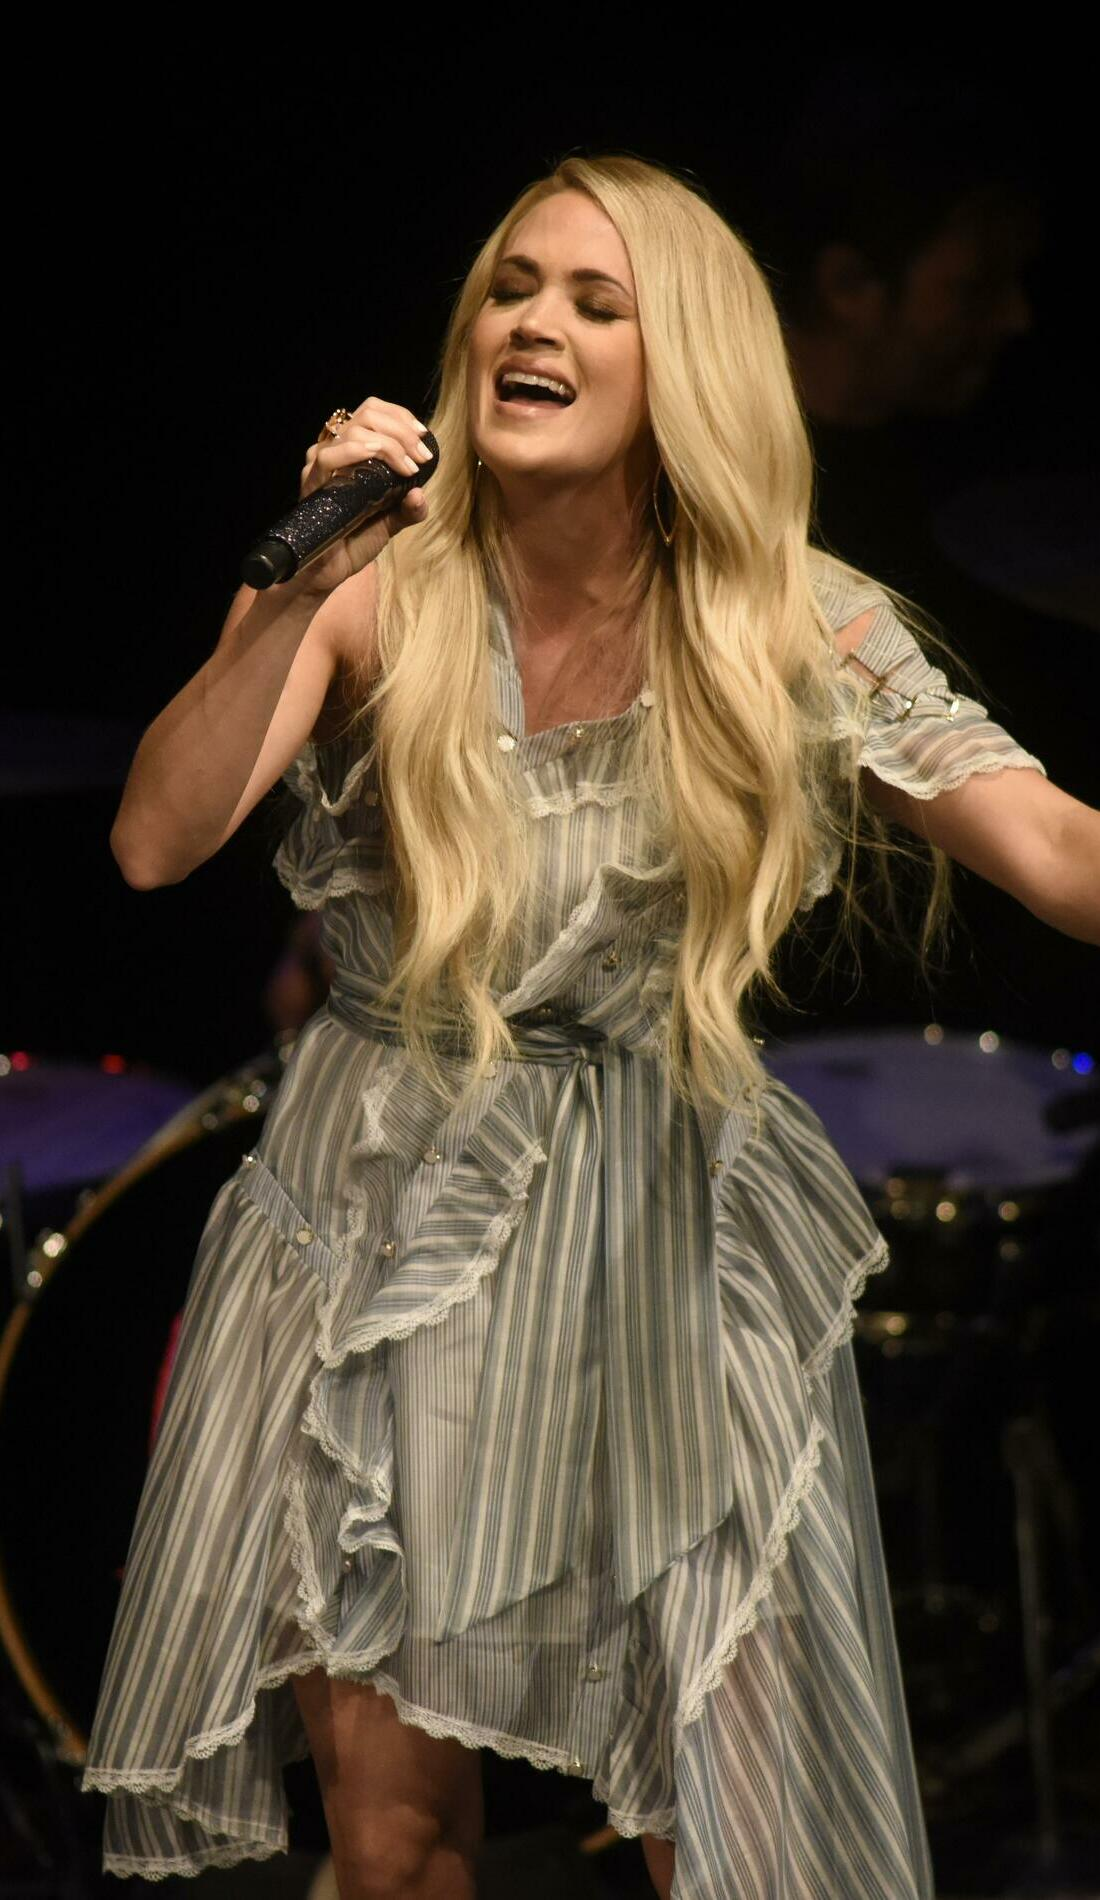 A Carrie Underwood live event